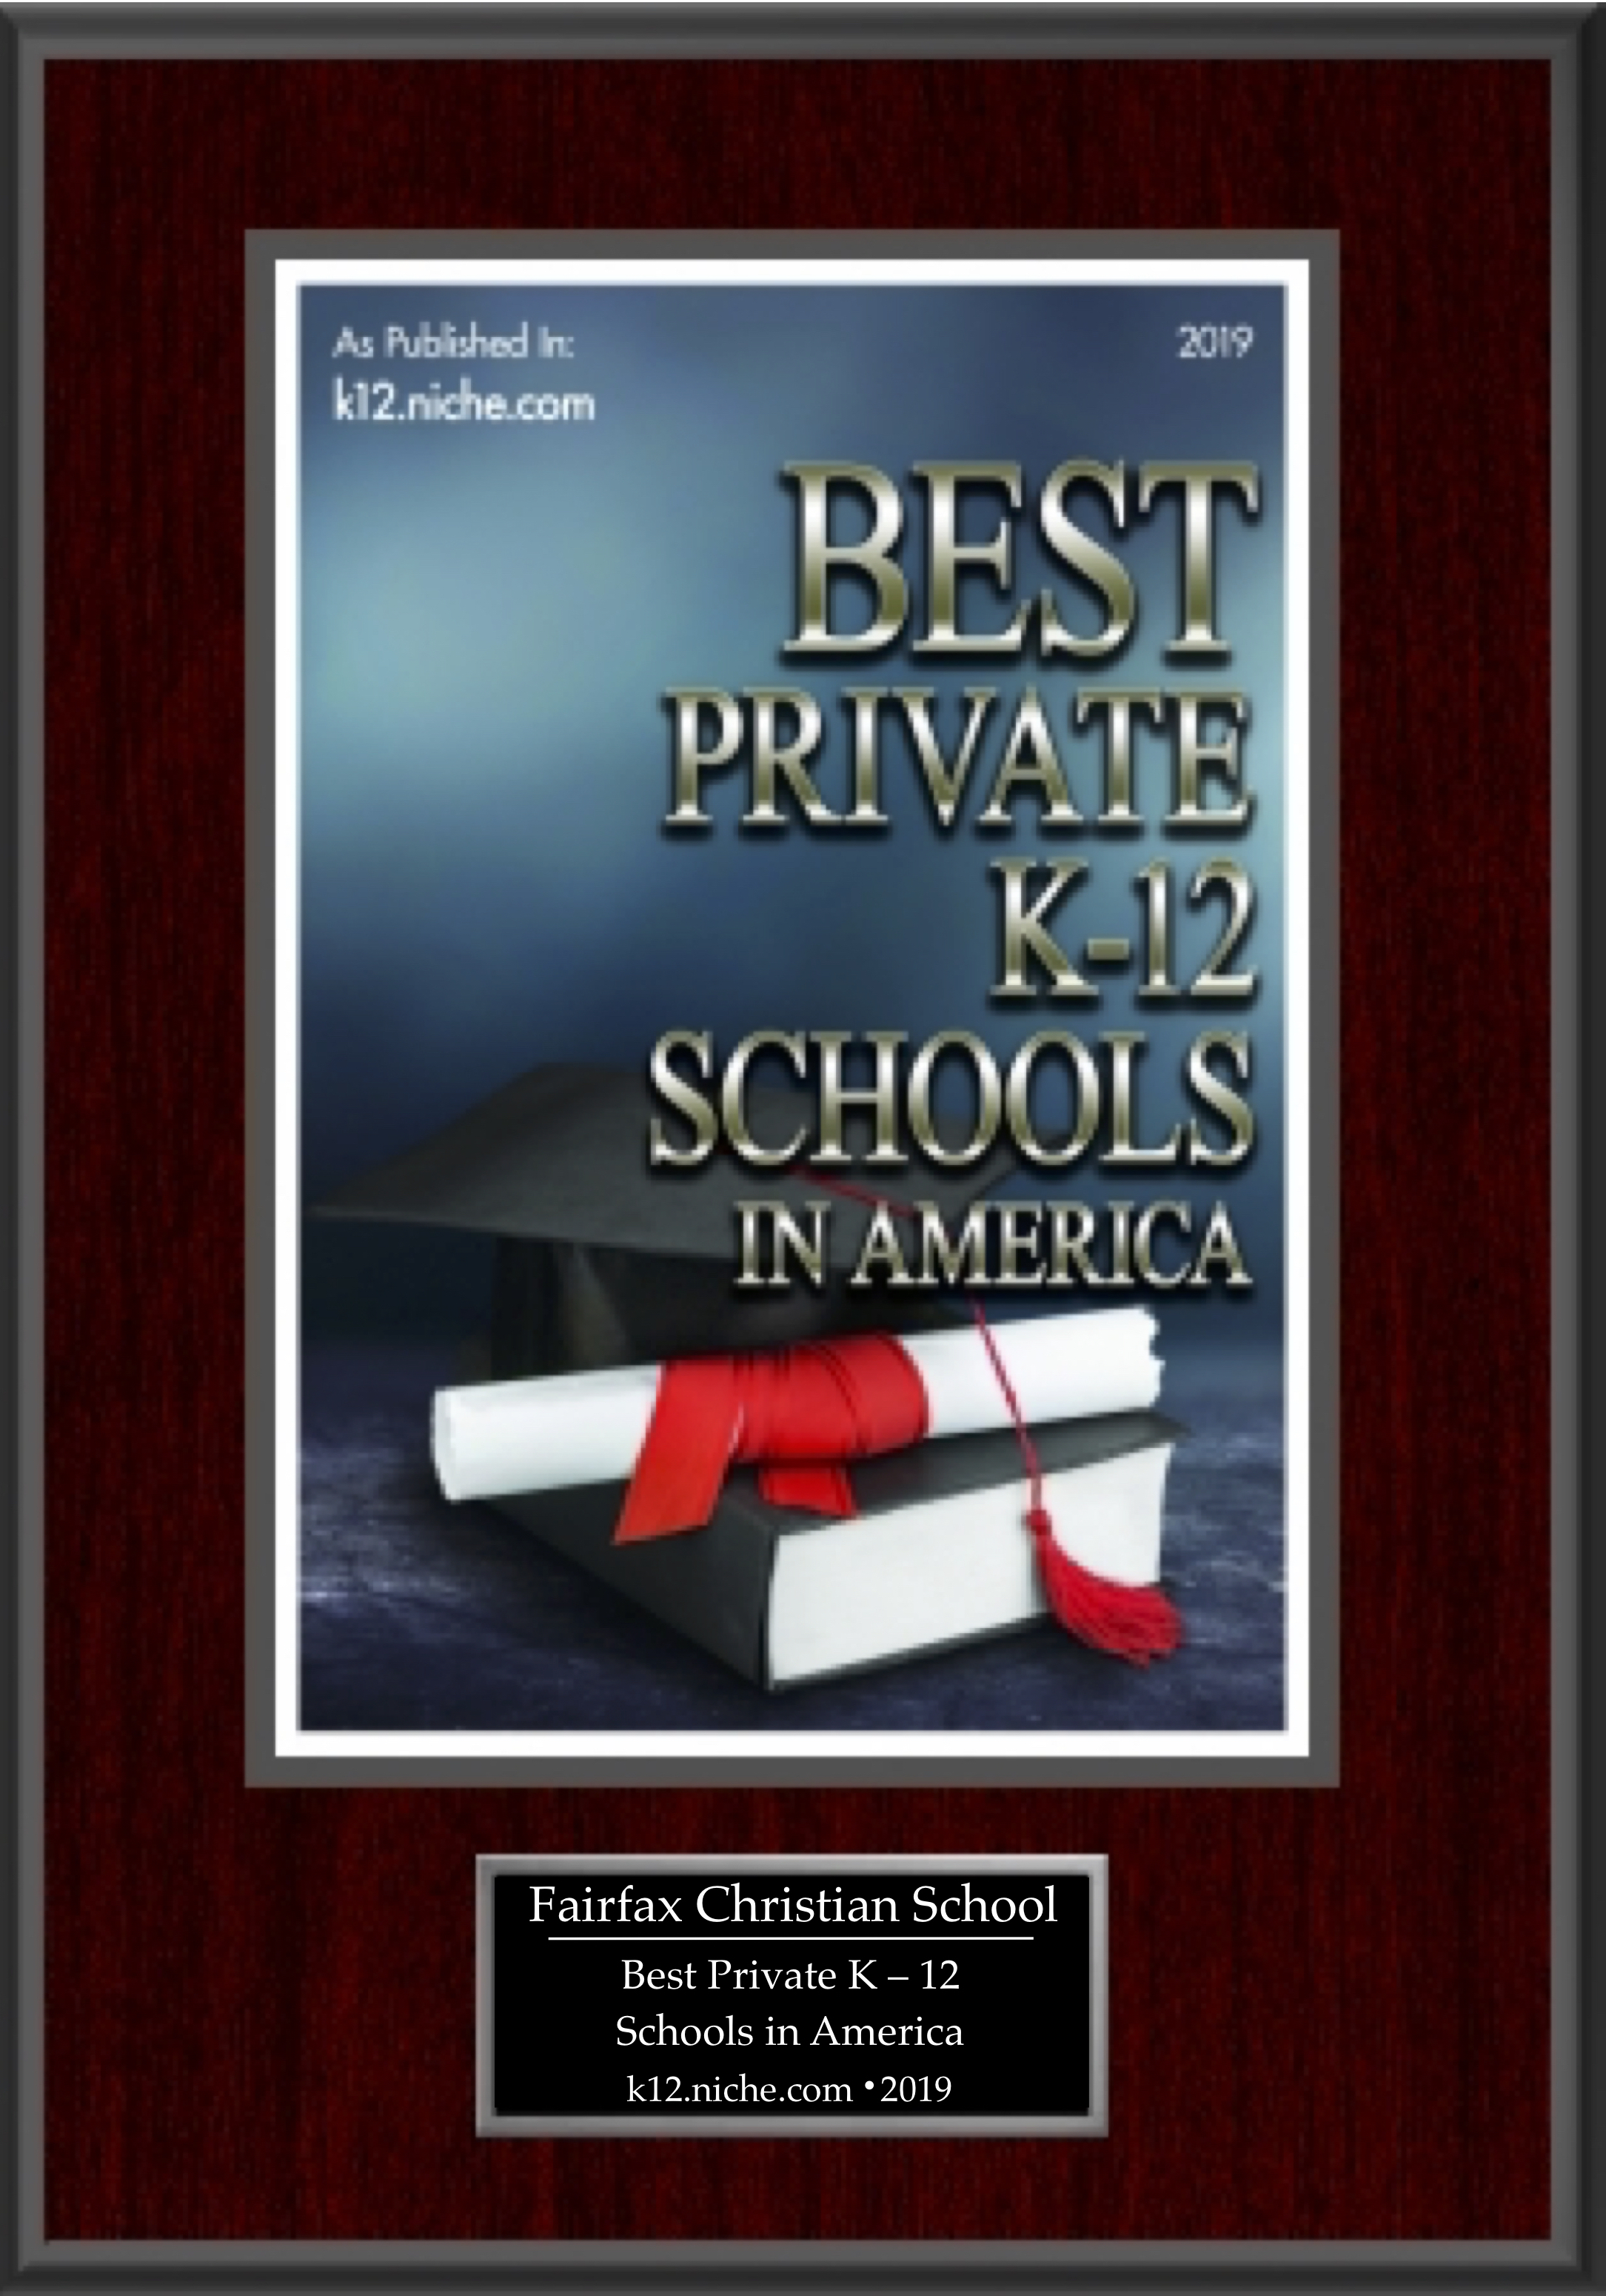 Niche.com-2019 Best K-12 Private School.jpg